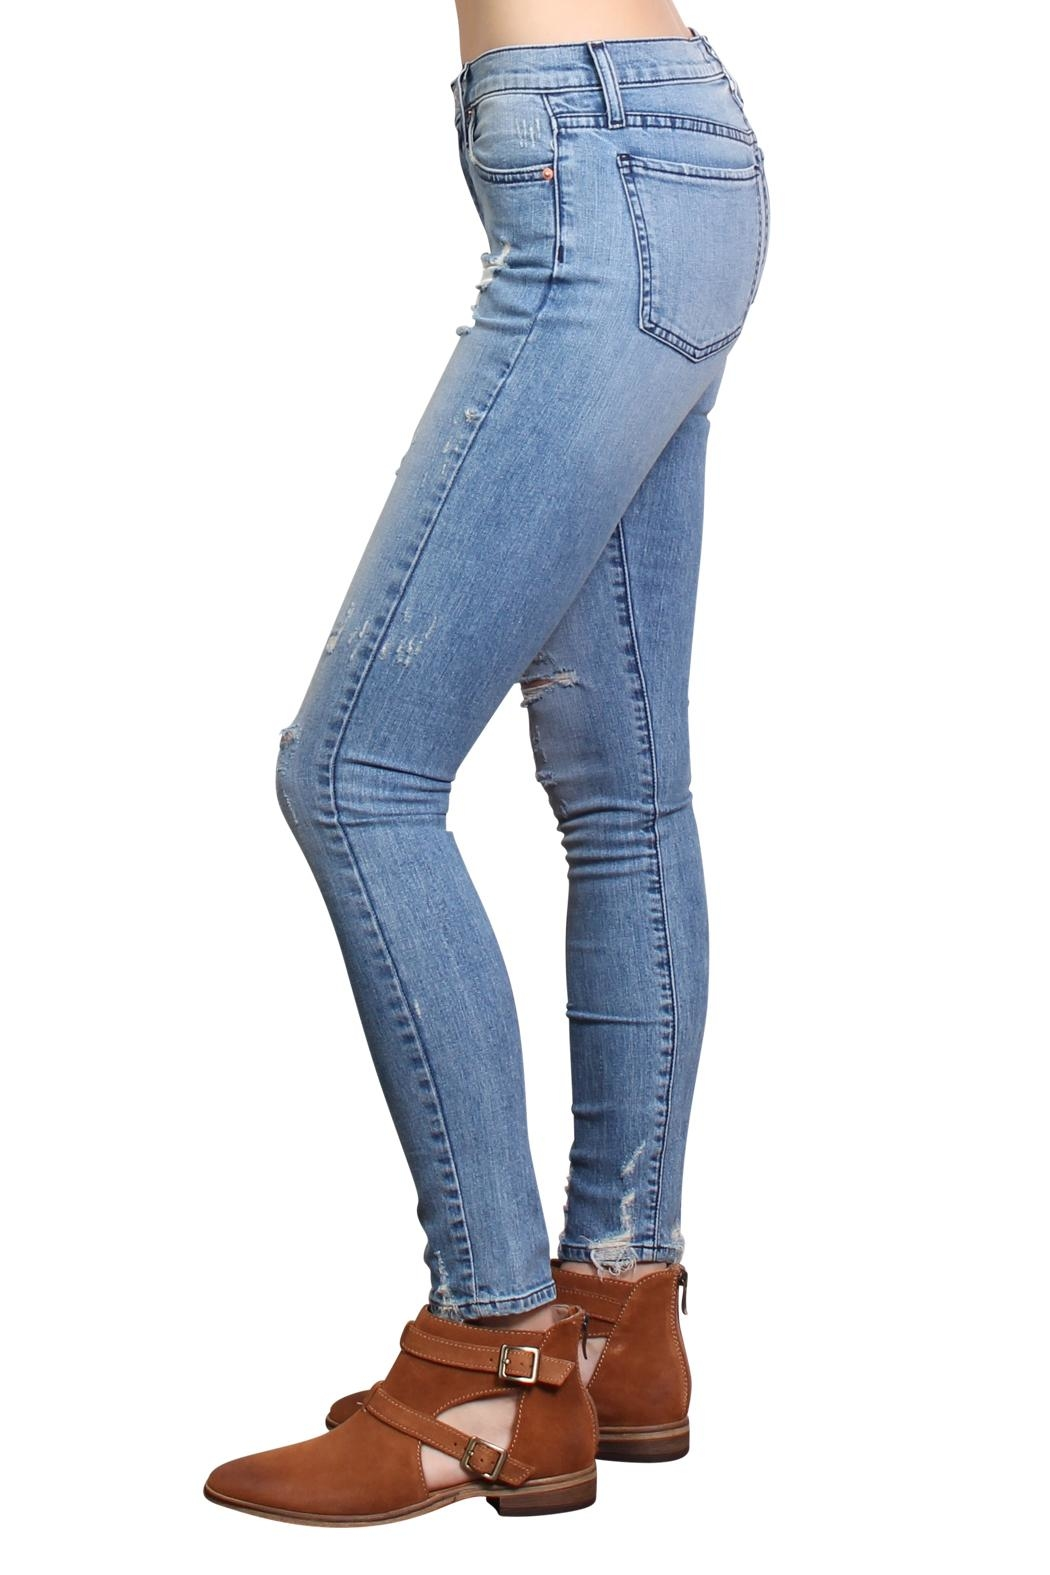 Michelle by Commune London Skinny Jeans - Side Cropped Image